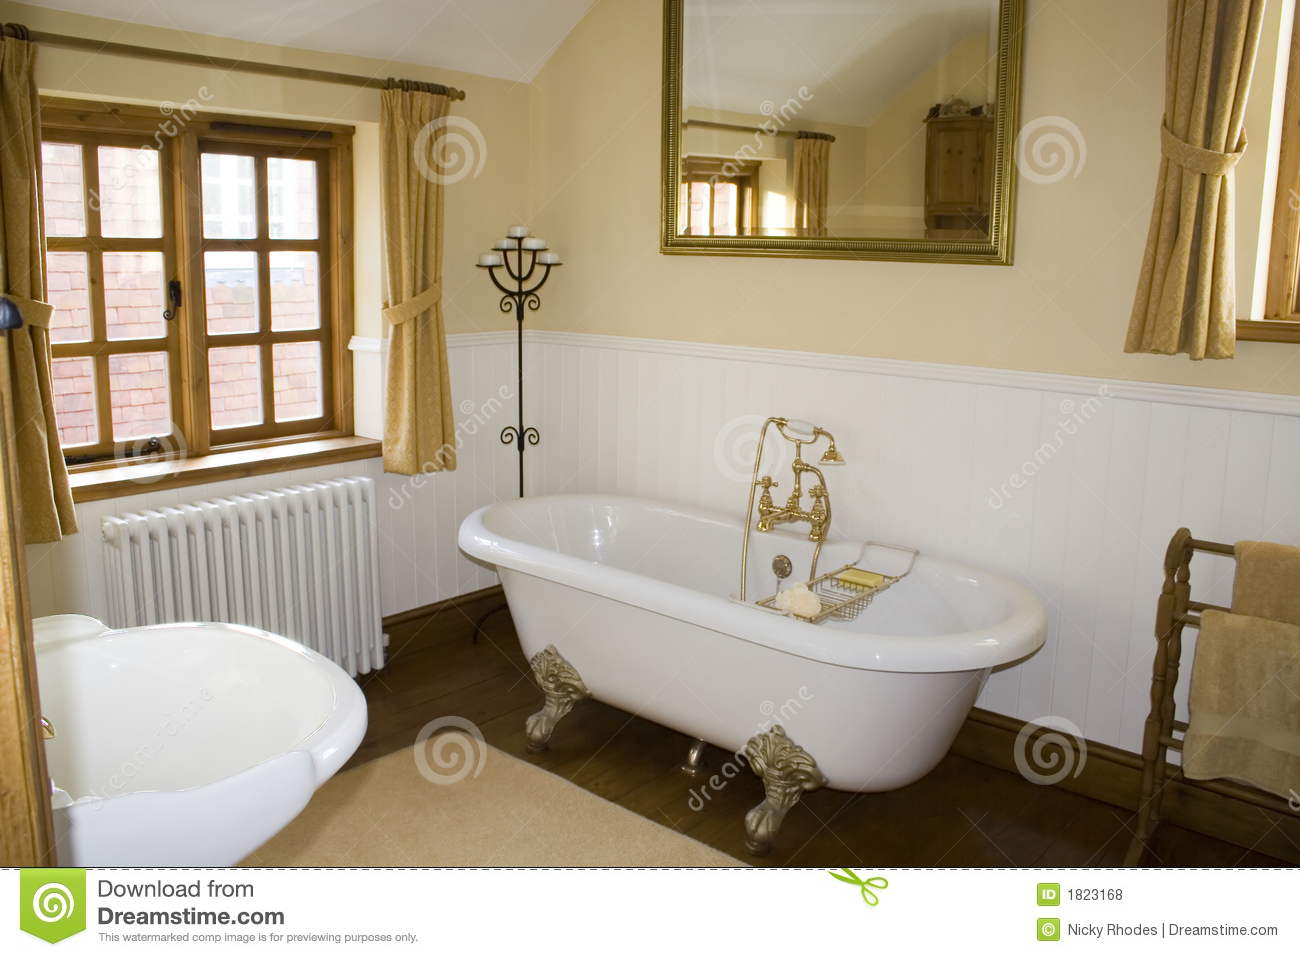 salle de bains de luxe photo stock image du cottage type 1823168. Black Bedroom Furniture Sets. Home Design Ideas